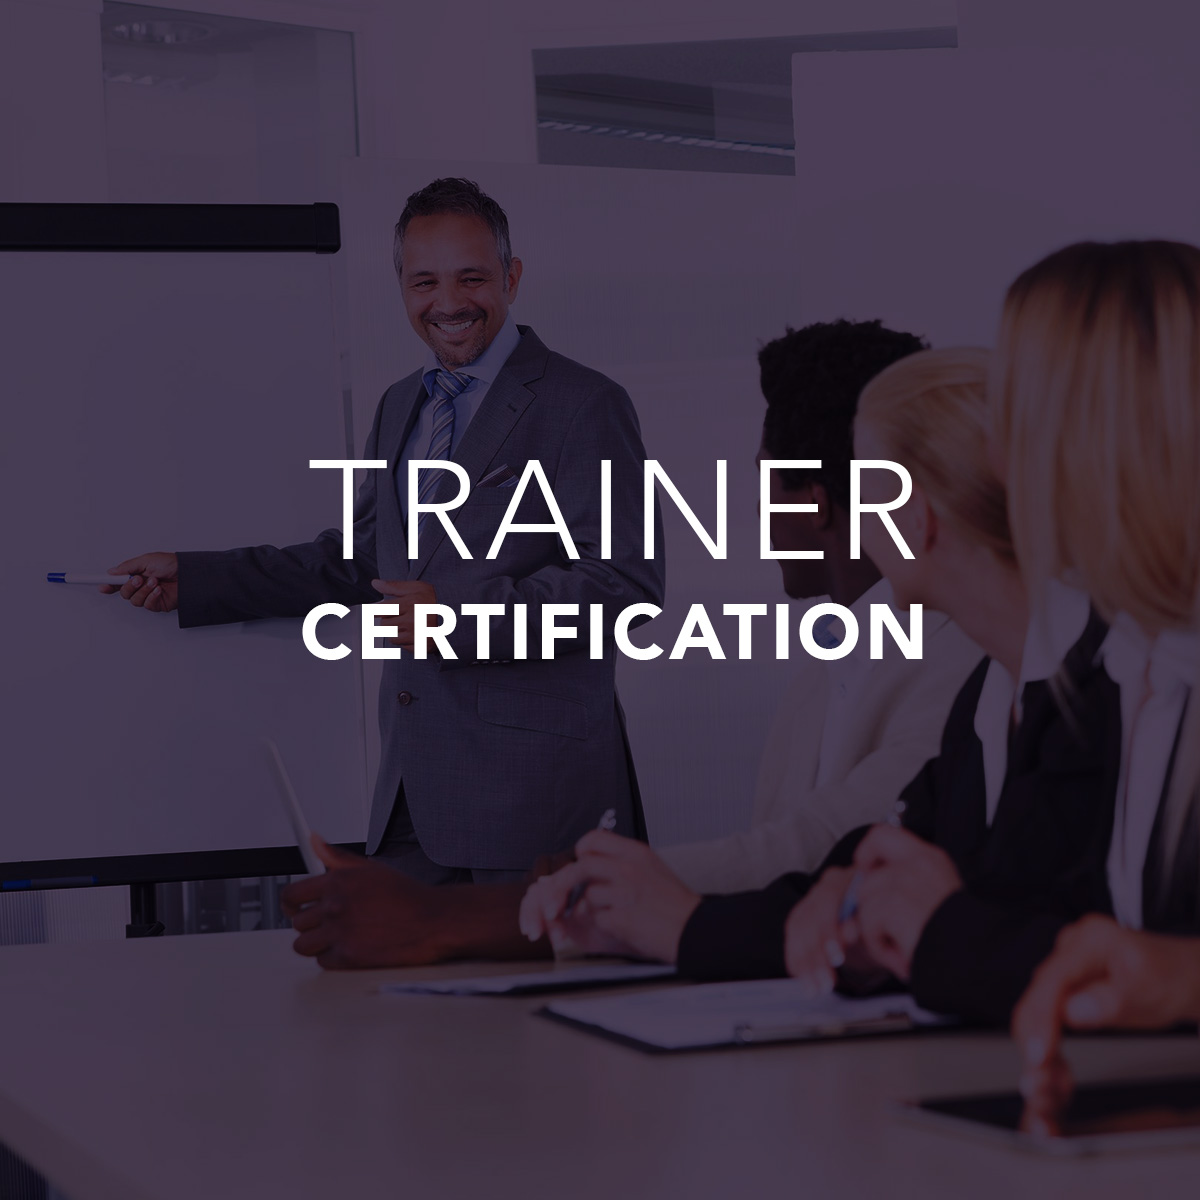 Trainer Certification product image - Nehemiah E-Community